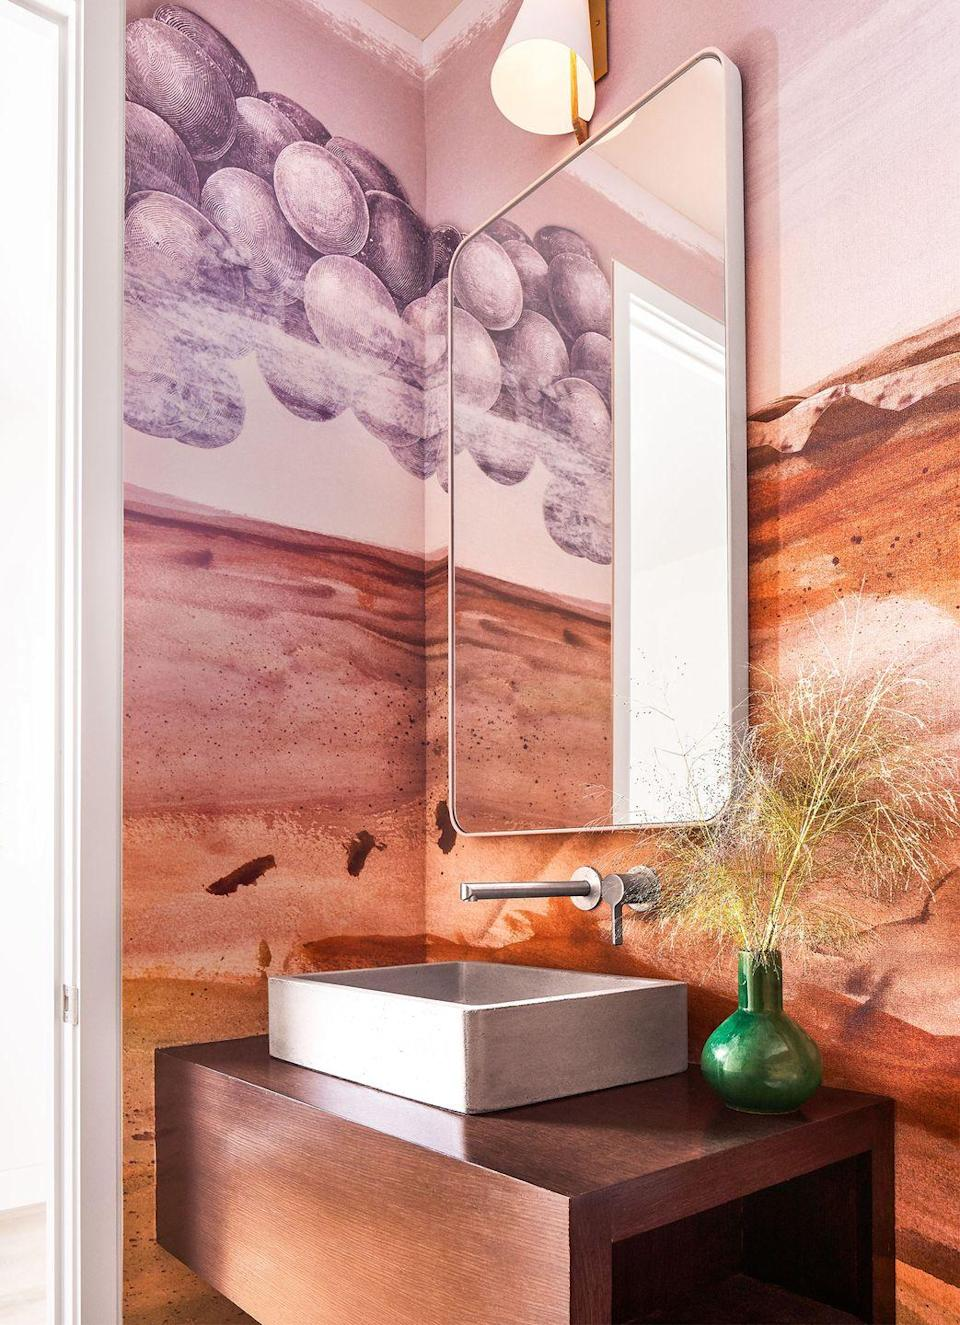 """<p>Our January/February 2021 issue gives us a brief history of <a href=""""https://www.elledecor.com/design-decorate/room-ideas/a35394007/powder-room-history-trends-2021/"""" rel=""""nofollow noopener"""" target=""""_blank"""" data-ylk=""""slk:powder rooms"""" class=""""link rapid-noclick-resp"""">powder rooms</a>—and why they might actually be the best room in the house. Here, the Dallas-based firm <a href=""""https://www.jeanliudesign.com/"""" rel=""""nofollow noopener"""" target=""""_blank"""" data-ylk=""""slk:Jean Liu Design"""" class=""""link rapid-noclick-resp"""">Jean Liu Design</a> created the powder room we all need, sheathed in a warm, uplands landscape wallpaper by Calico matched with a Nipomo sink by Native Trails. Principal Jean Liu takes a modern approach and turns to her travels and love of fashion when designing both residential and commercial spaces.</p>"""